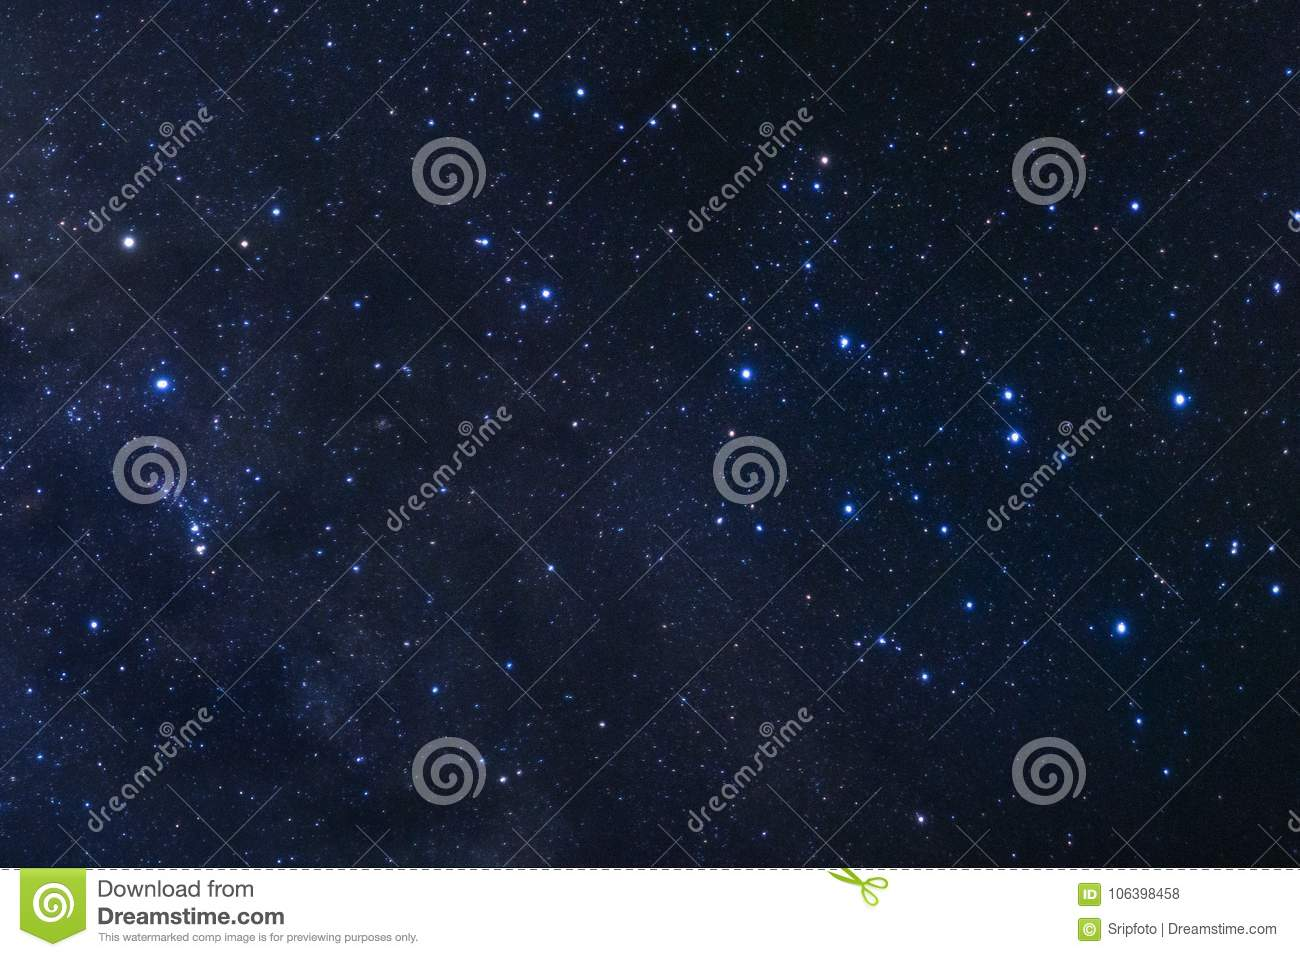 Starry night sky, Milky way galaxy with stars and space dust in